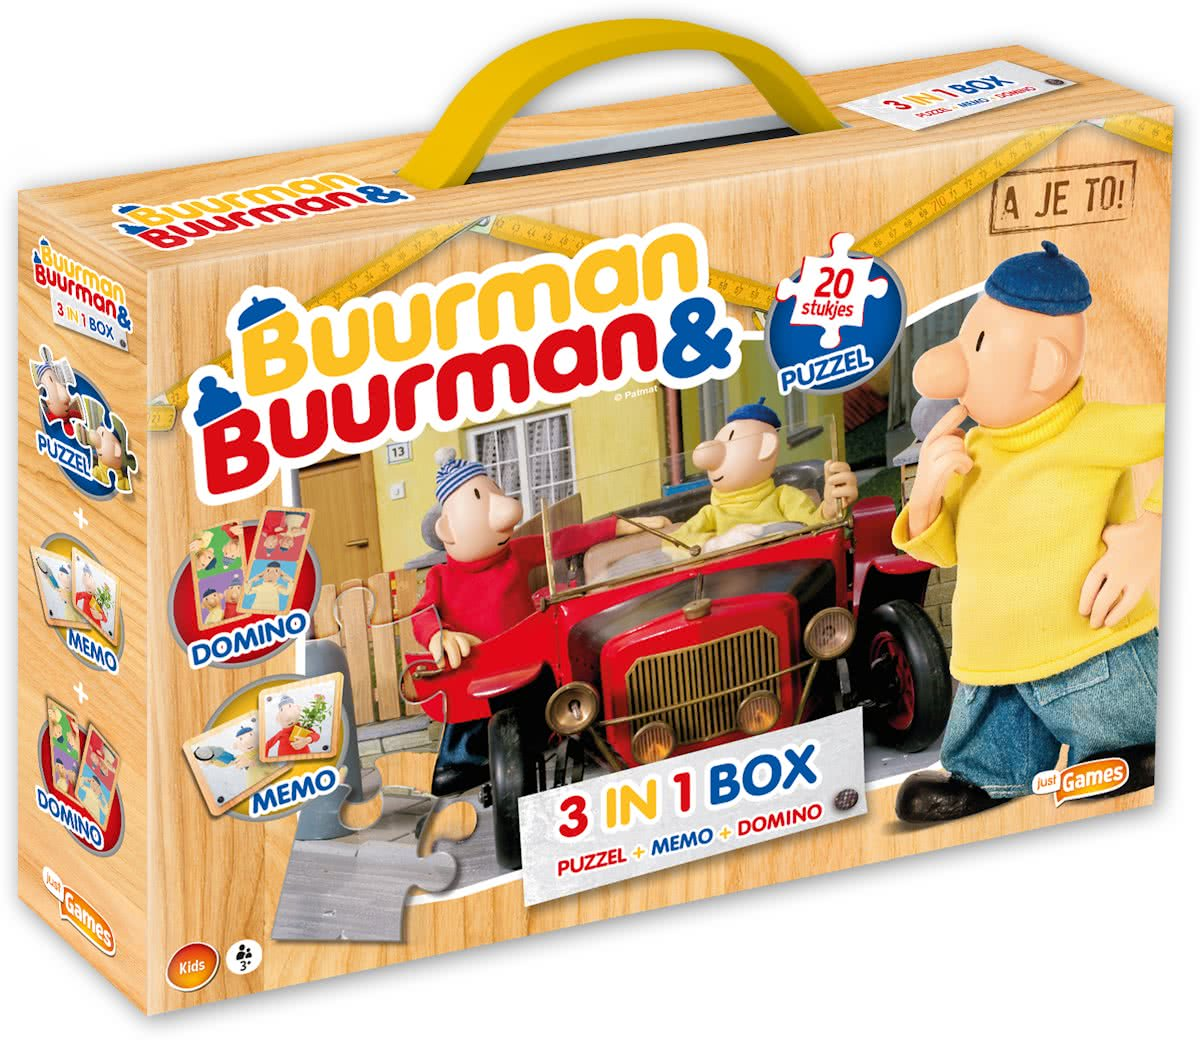 Buurman & Buurman - 3-in-1 Box (Puzzel+Memo+Domino)